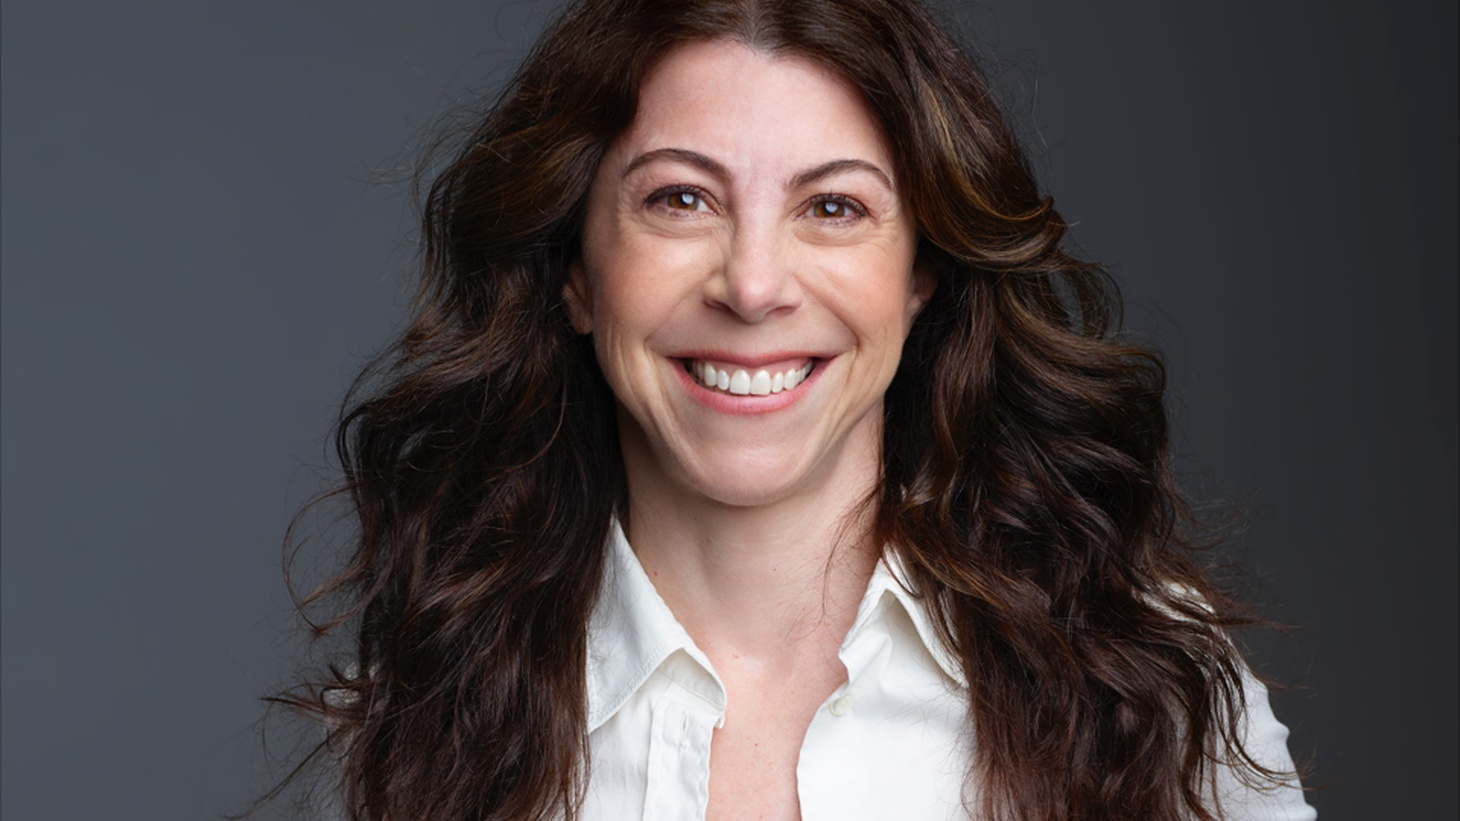 TV writer Nell Scovell's credits include 'The Simpsons,' 'Murphy Brown,' 'Late Night with David Letterman' and 'NCIS.' When she started working in TV in the late 1980's, more often than not, she'd be the only woman in the writers room.